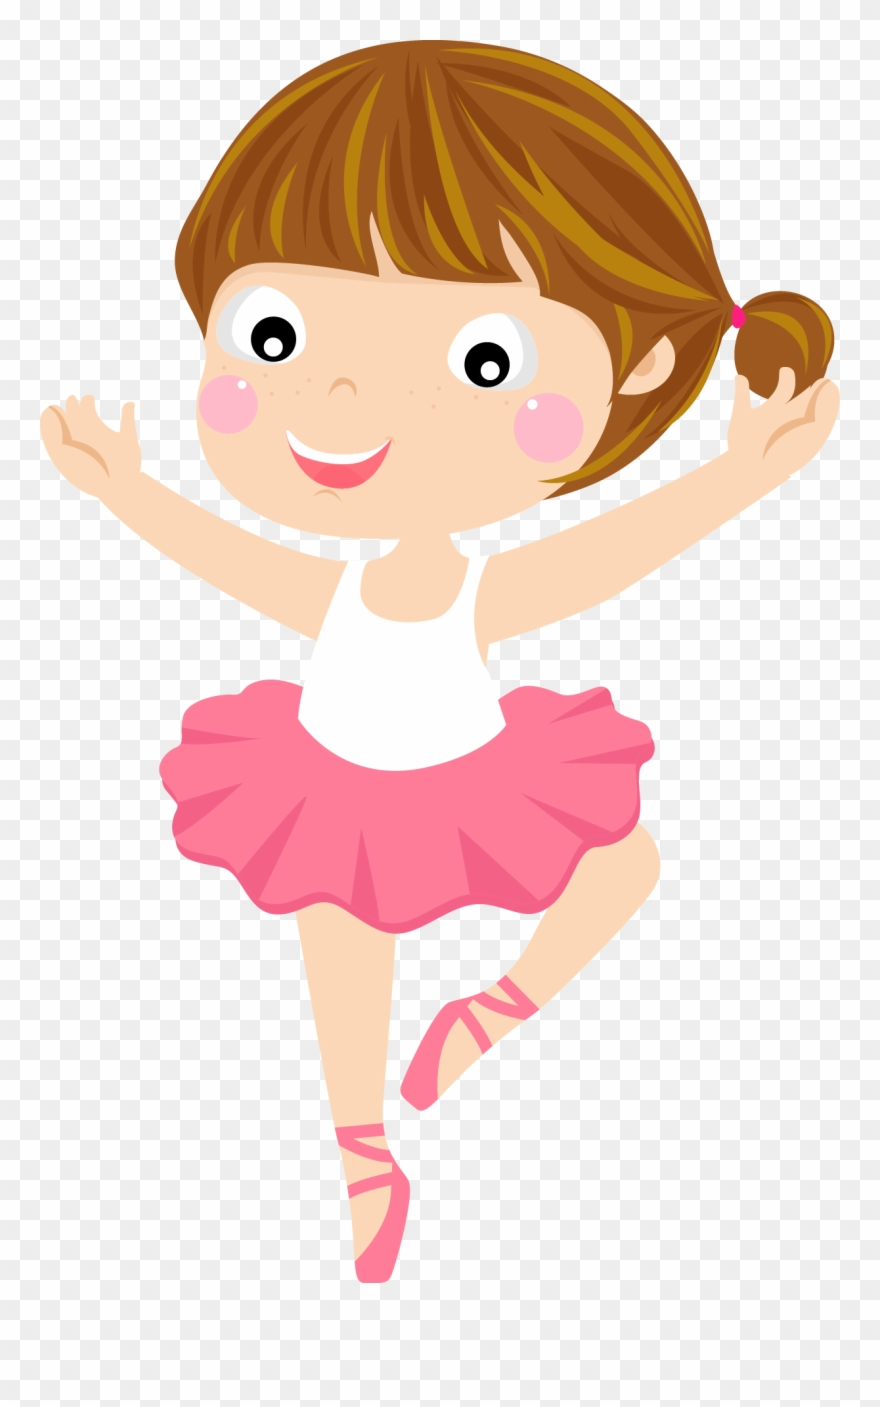 Ballet Cartoon Dancer Clipart 2655145 Pinclipart